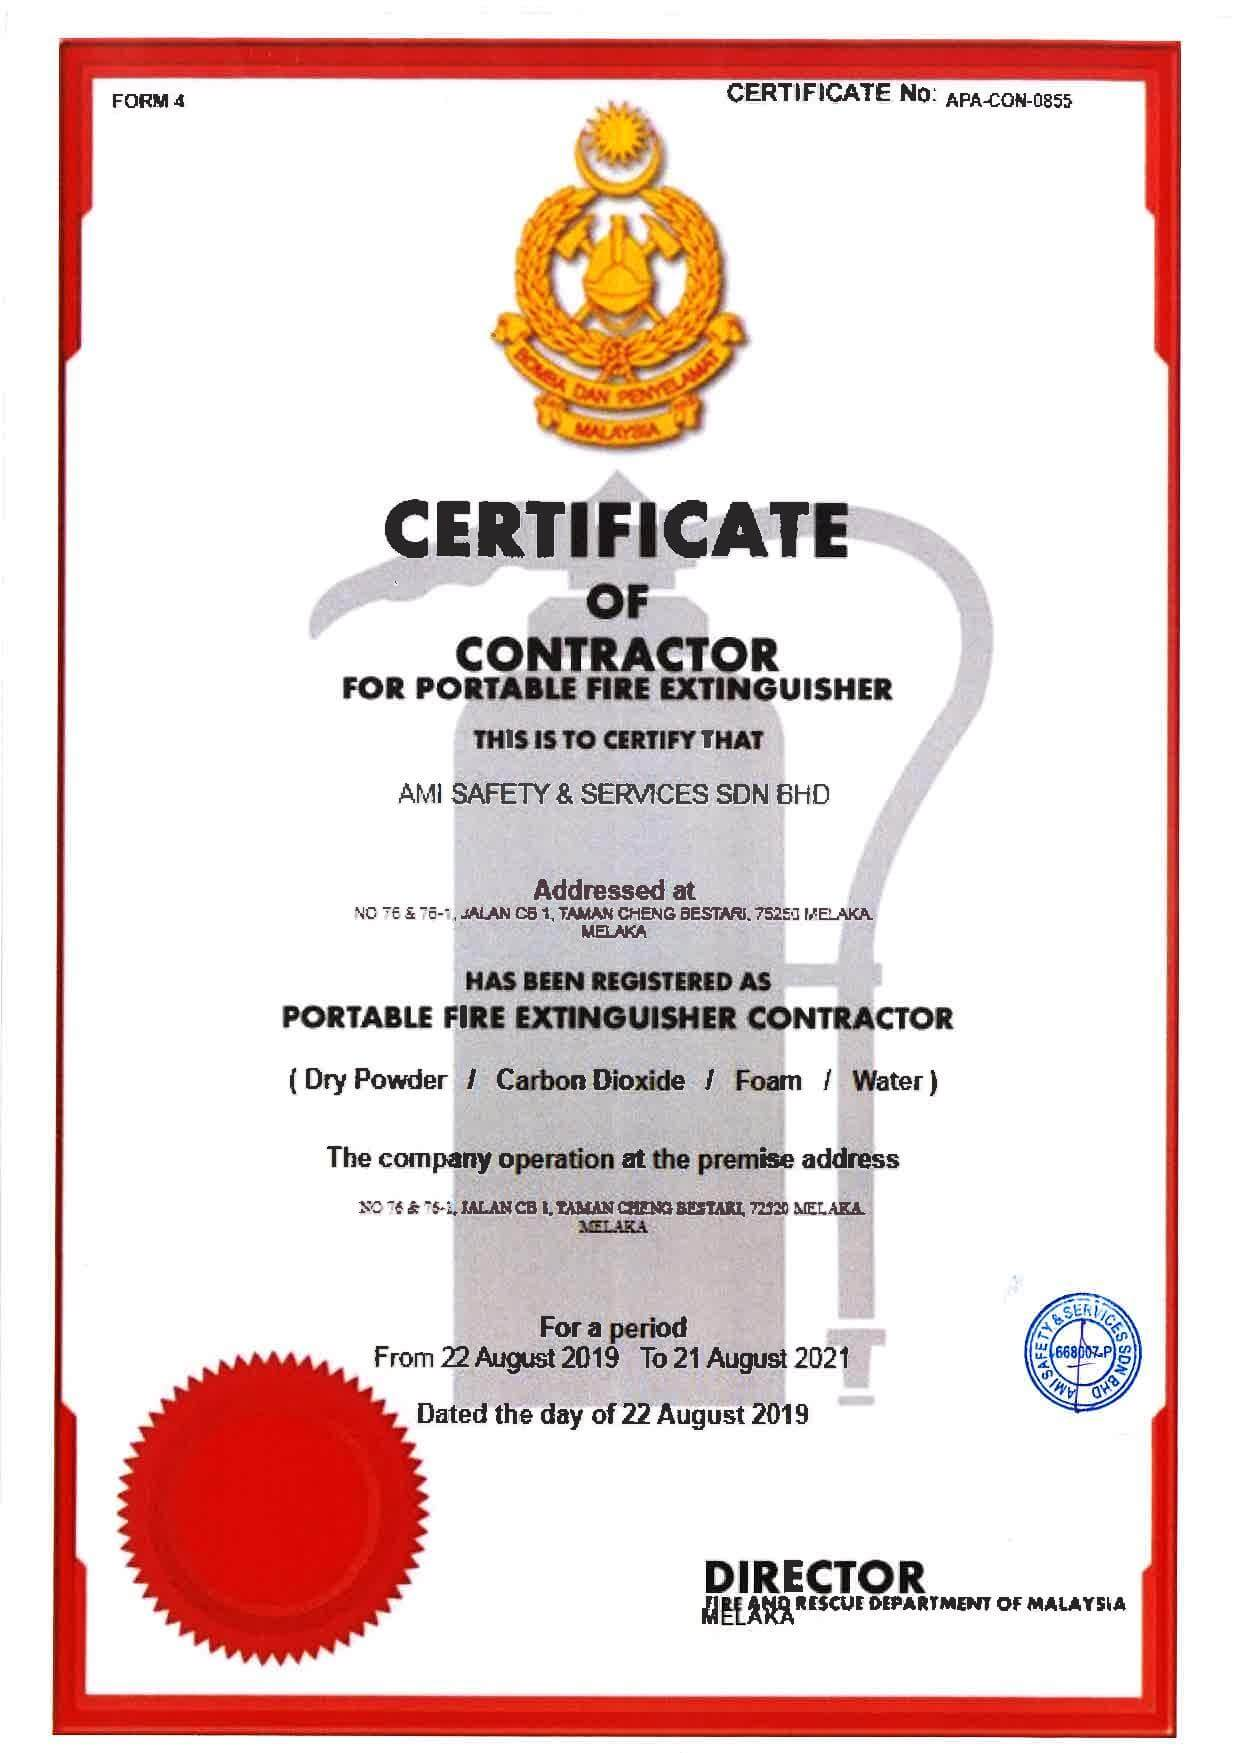 Certificate of Contractor for Portable Fire Extinguisher,fire,fire extinguisher,ami ventures,ami safety,safety,melaka fire extinguisher